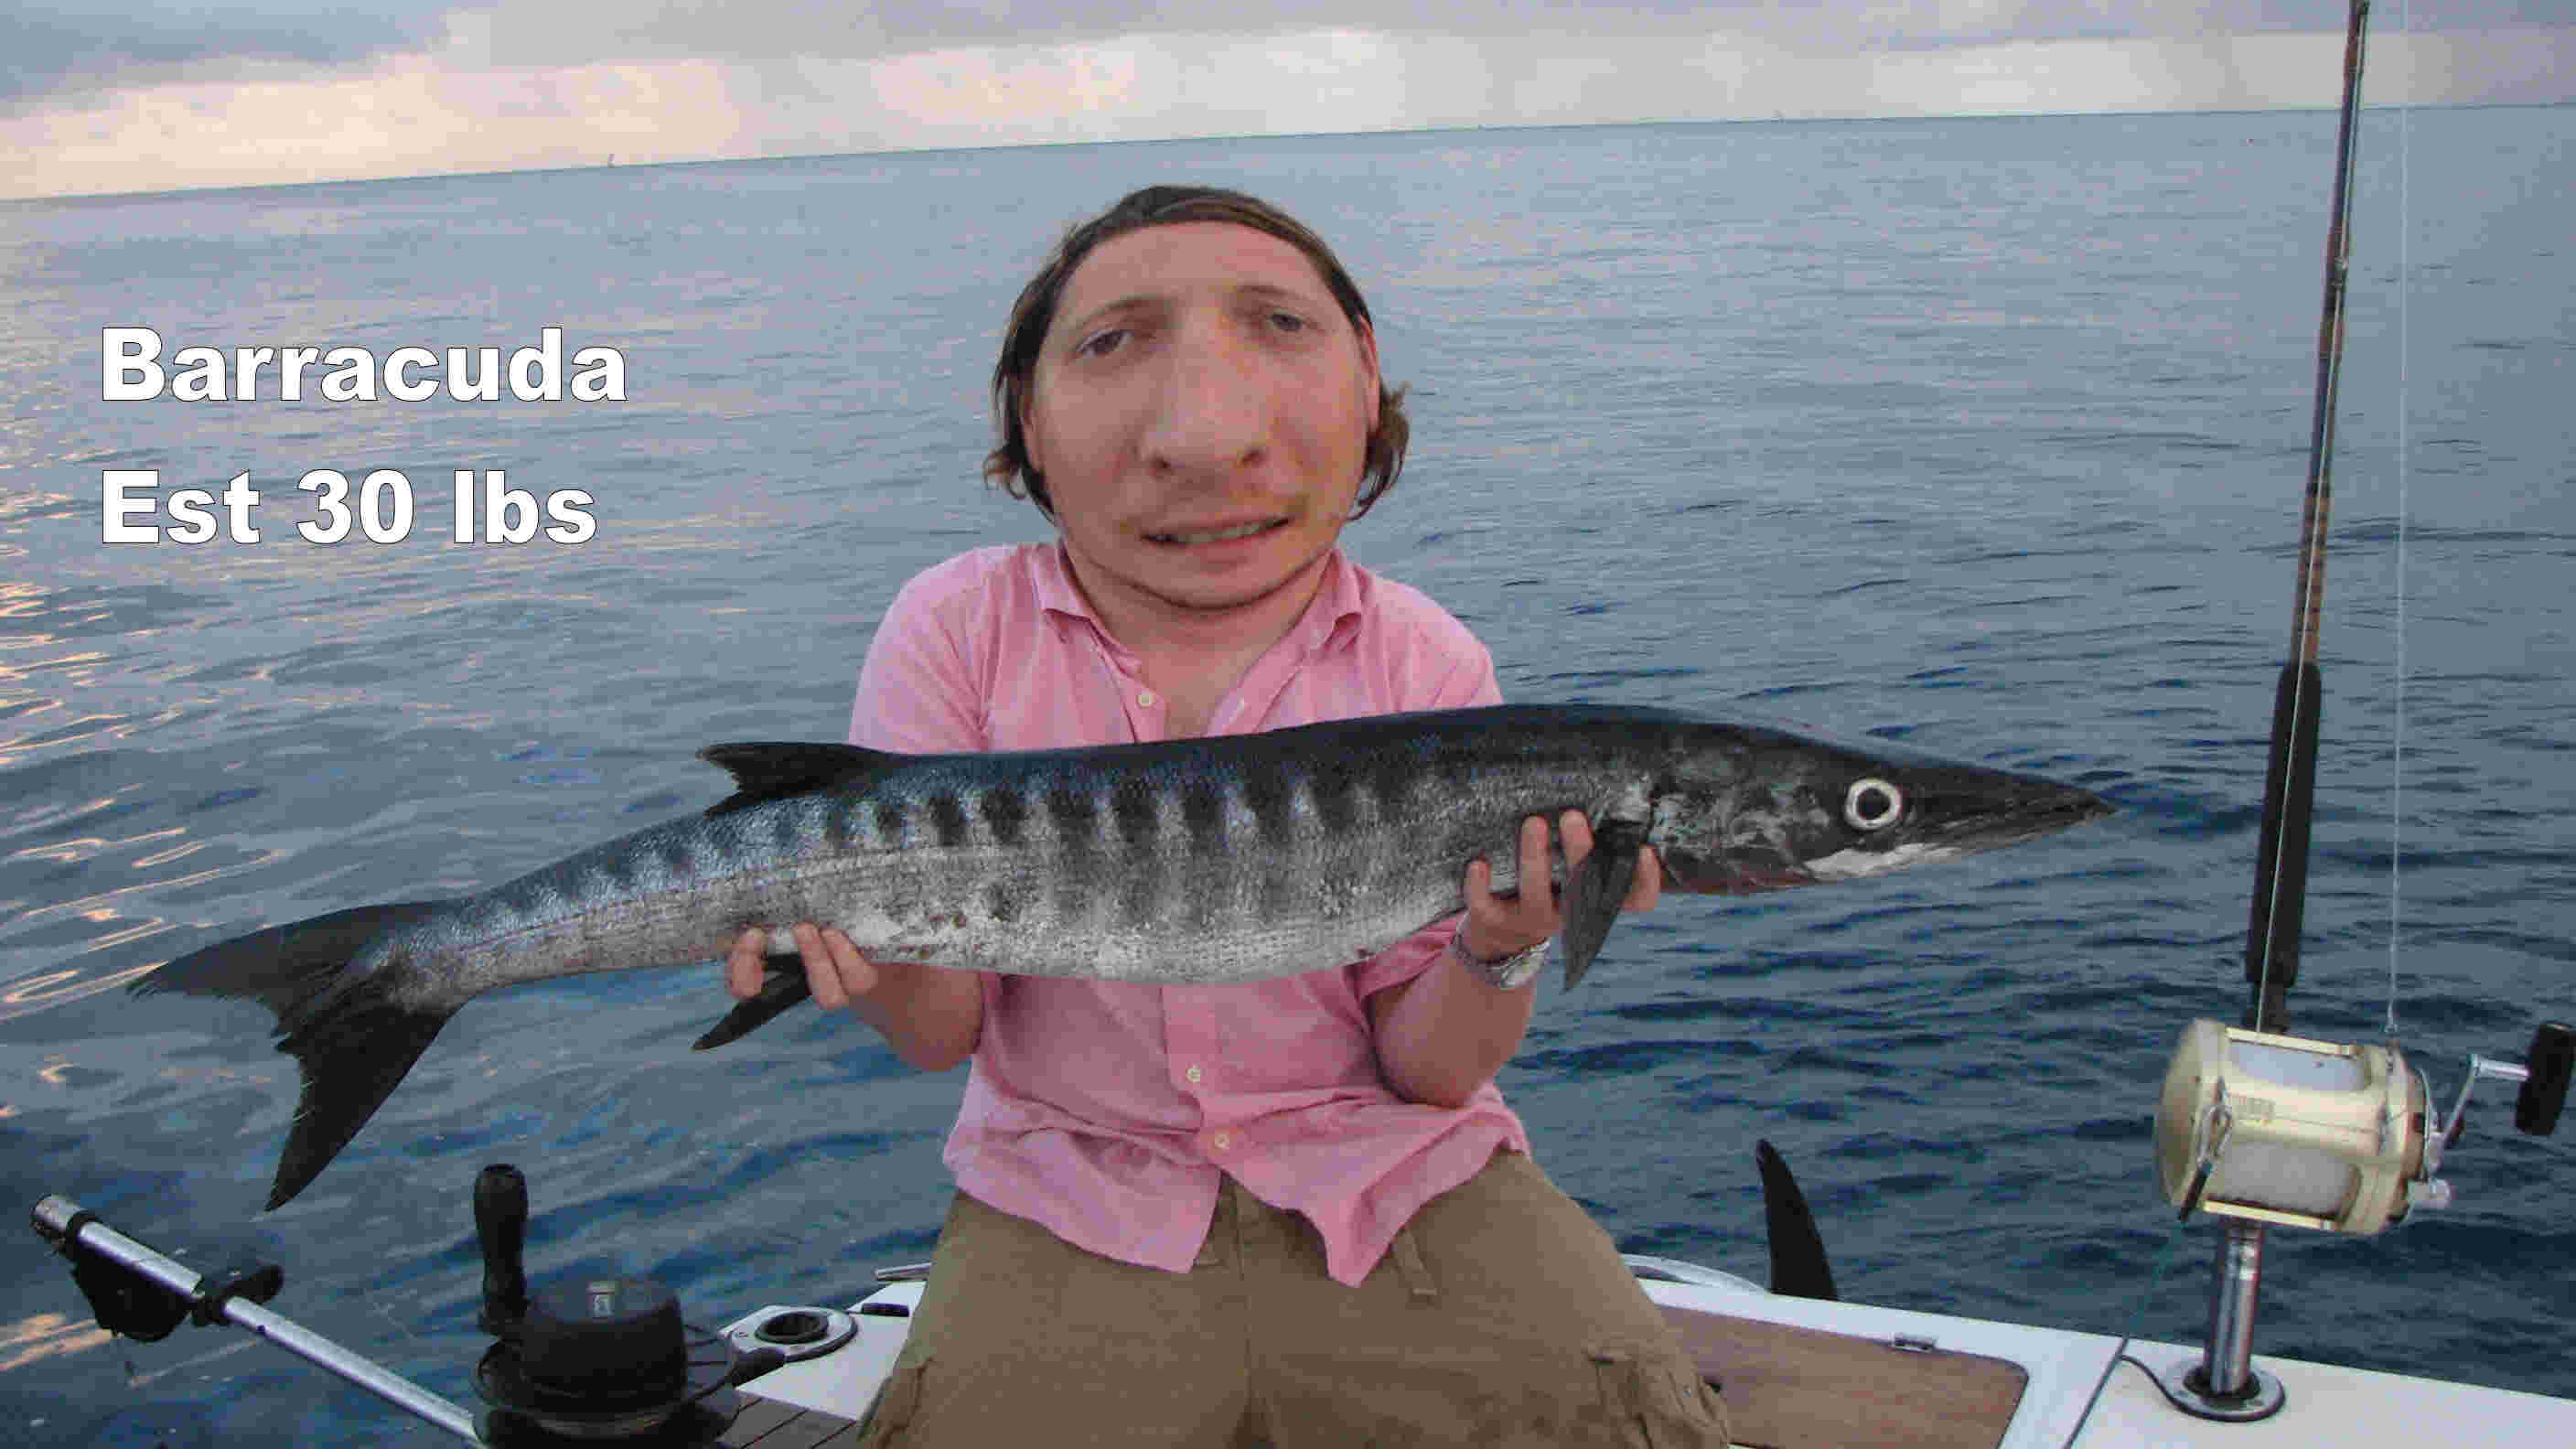 Big fish diaries an amateur specimen angler 39 s quest to for Largest saltwater fish